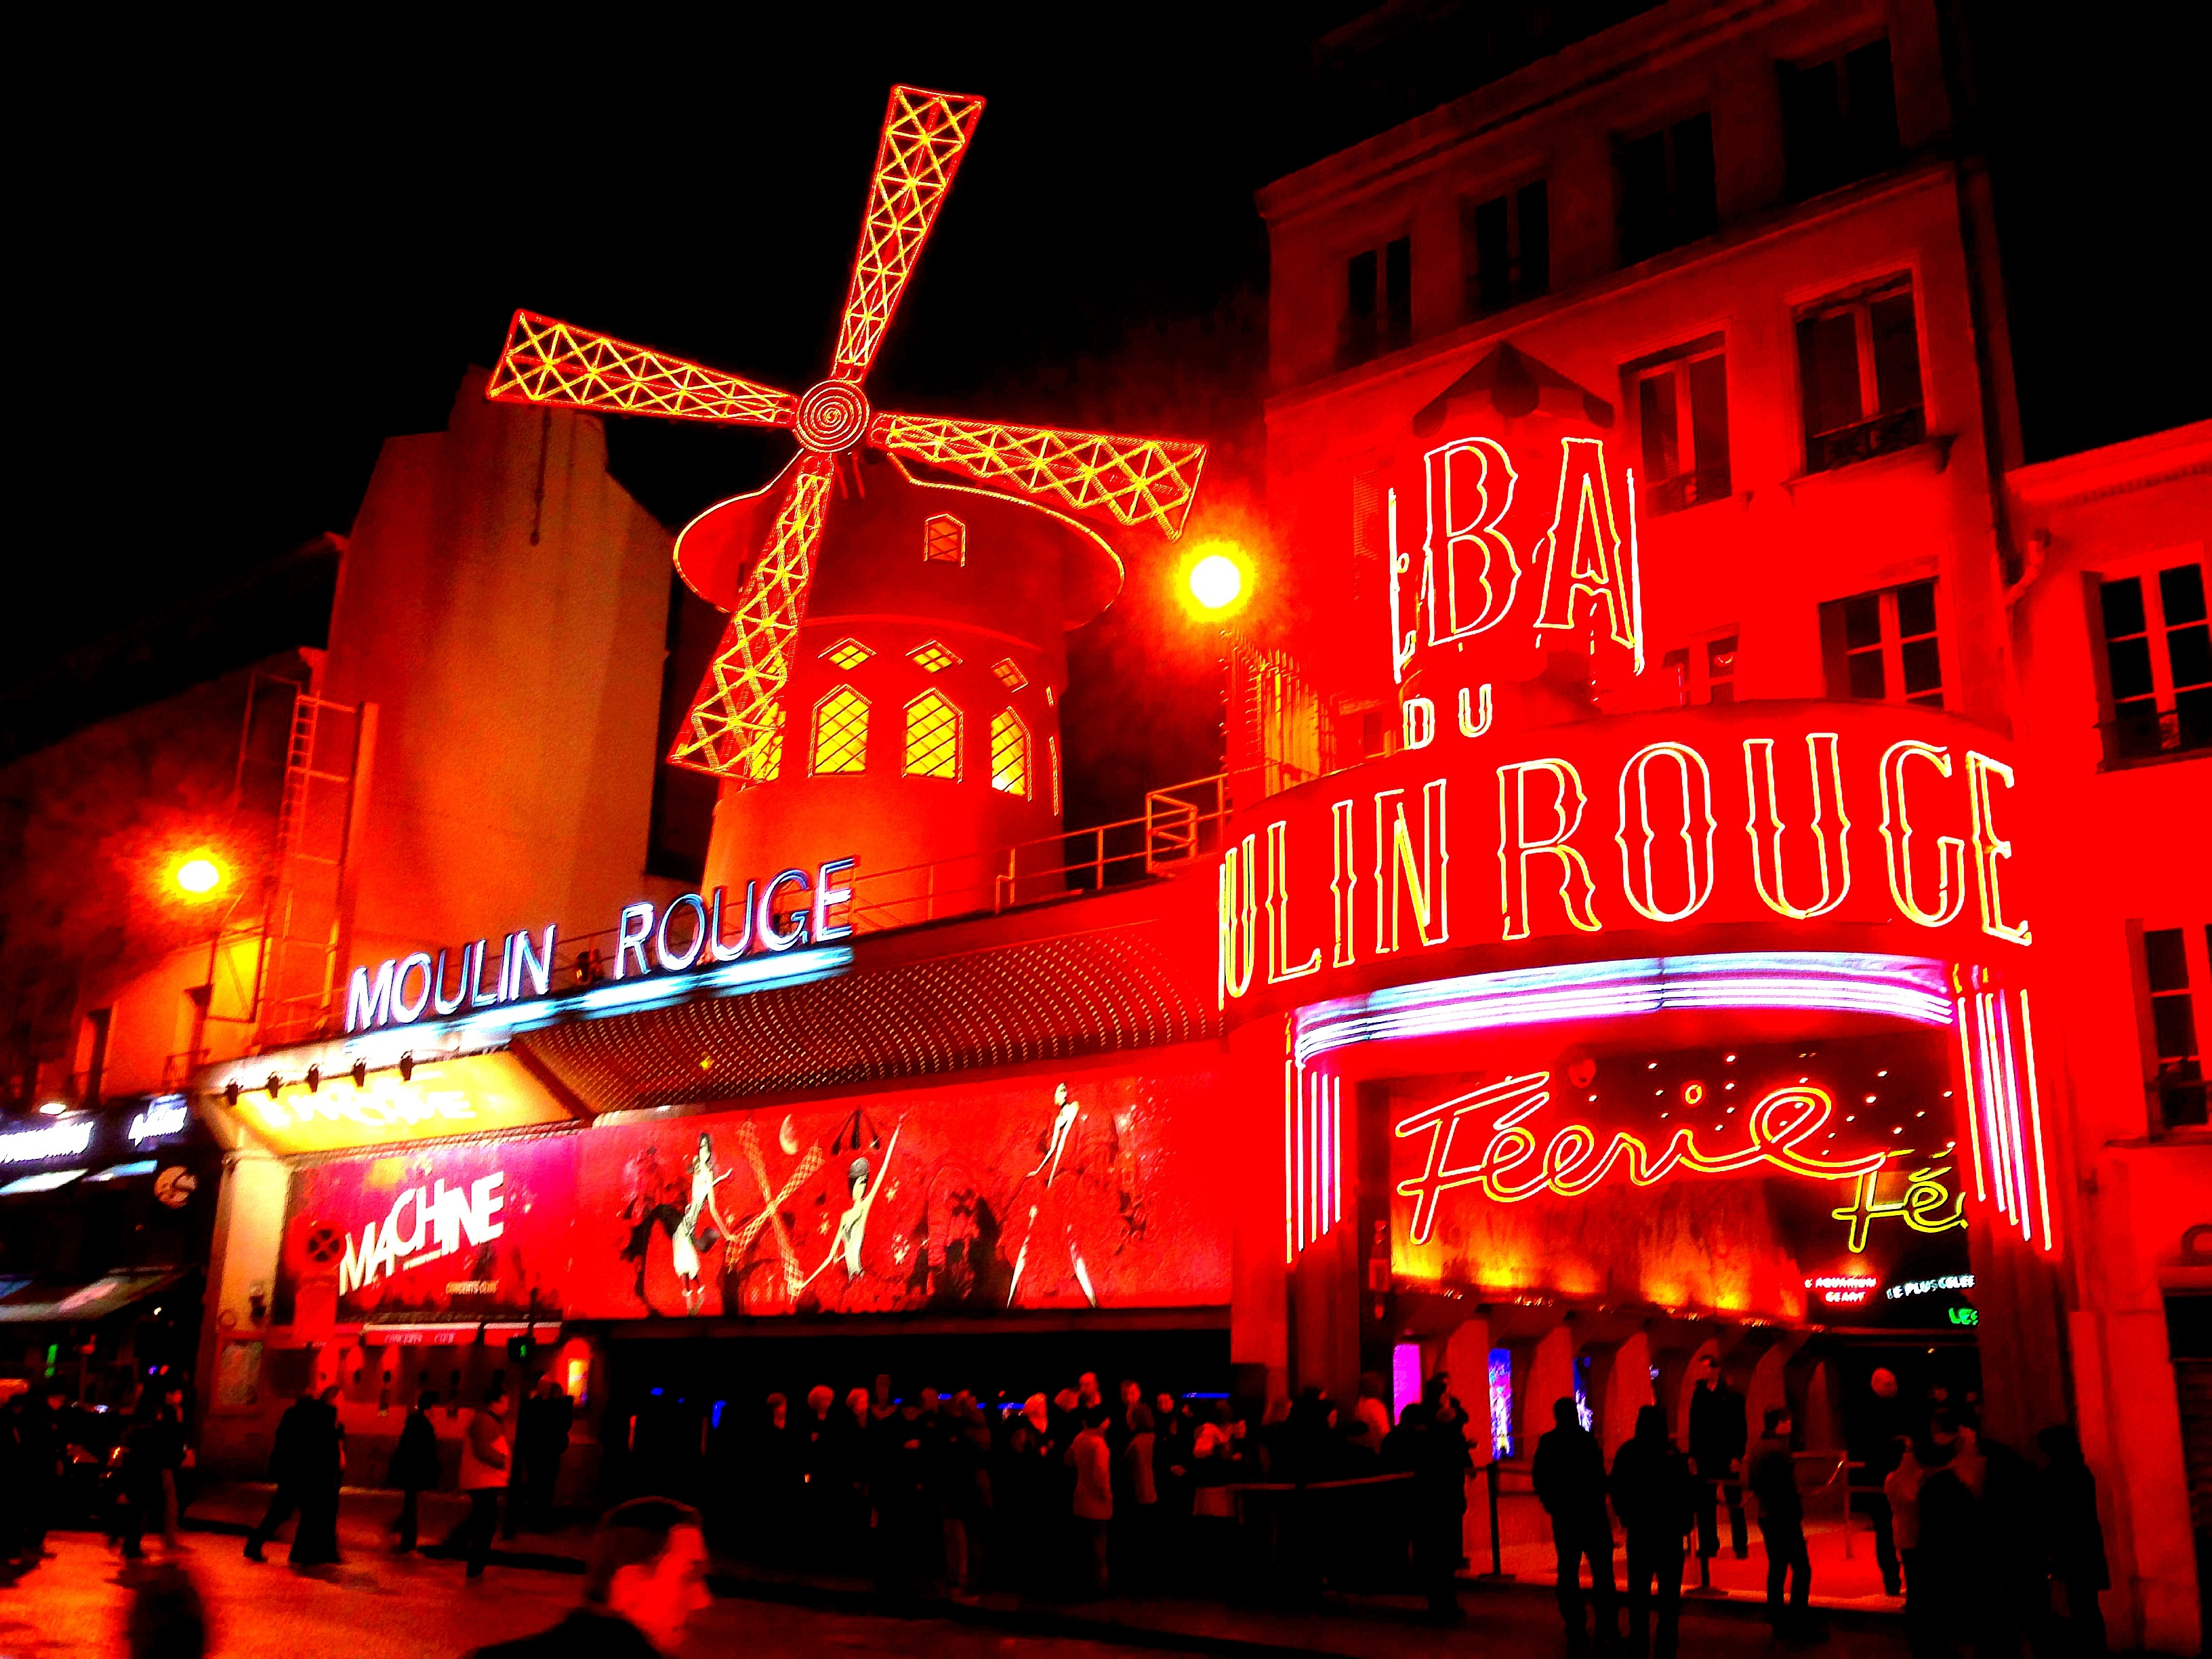 My Thoughts on Moulin Rouge